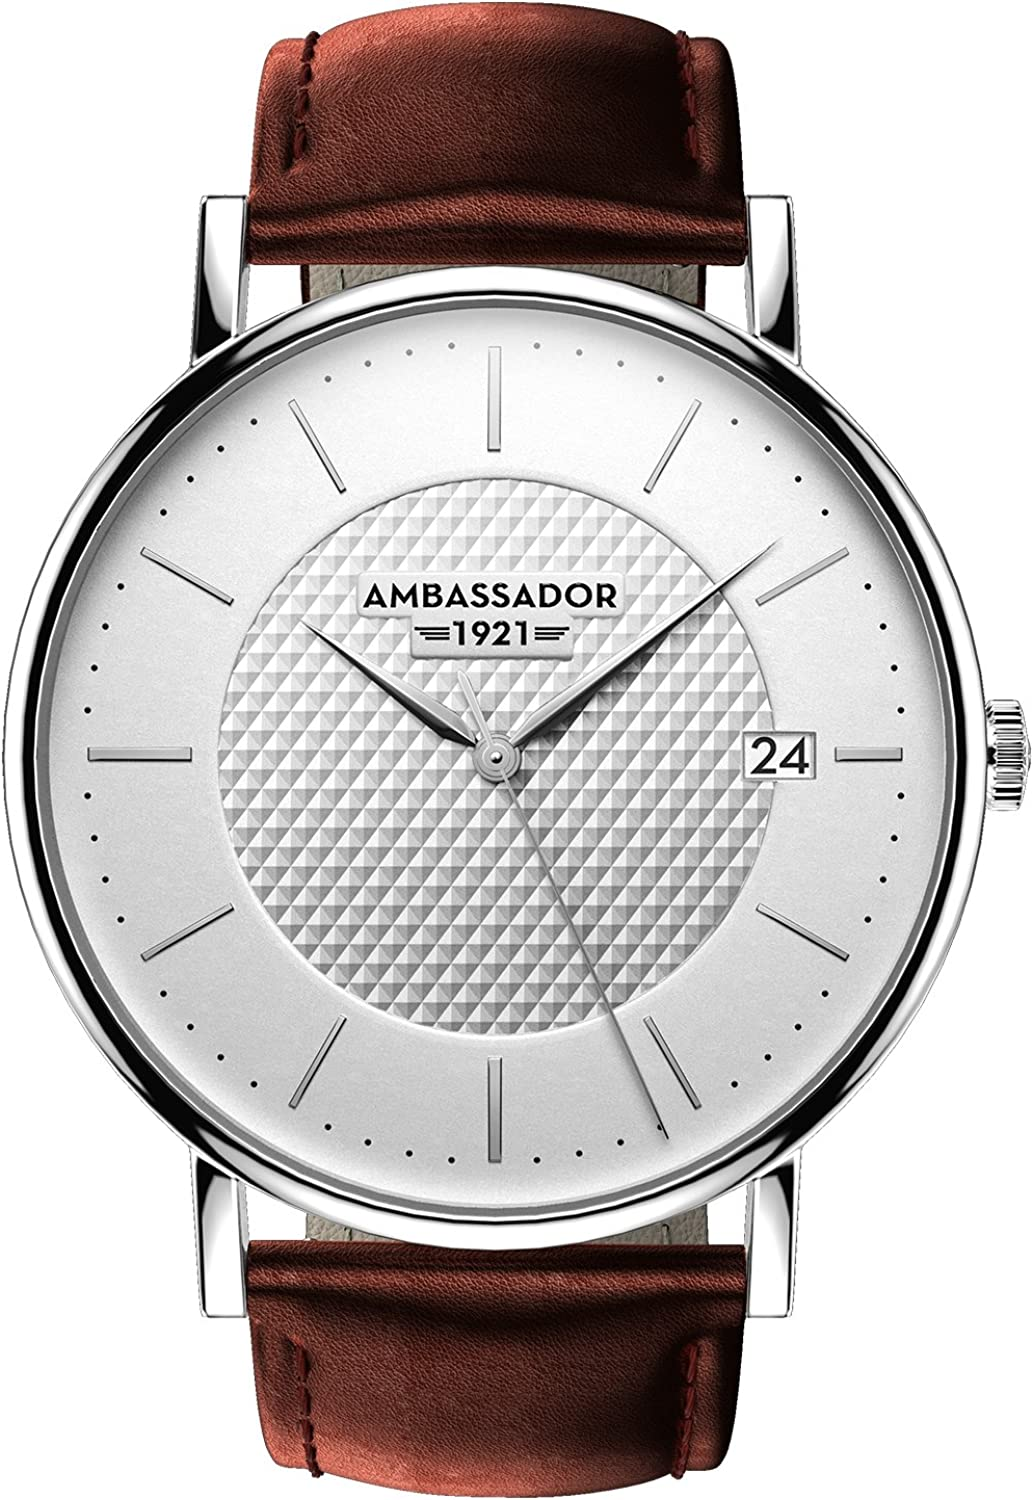 Ambassador Luxury Watch for Men – Heritage 1921 Silver Case with Brown Leather Strap with Swiss Quality